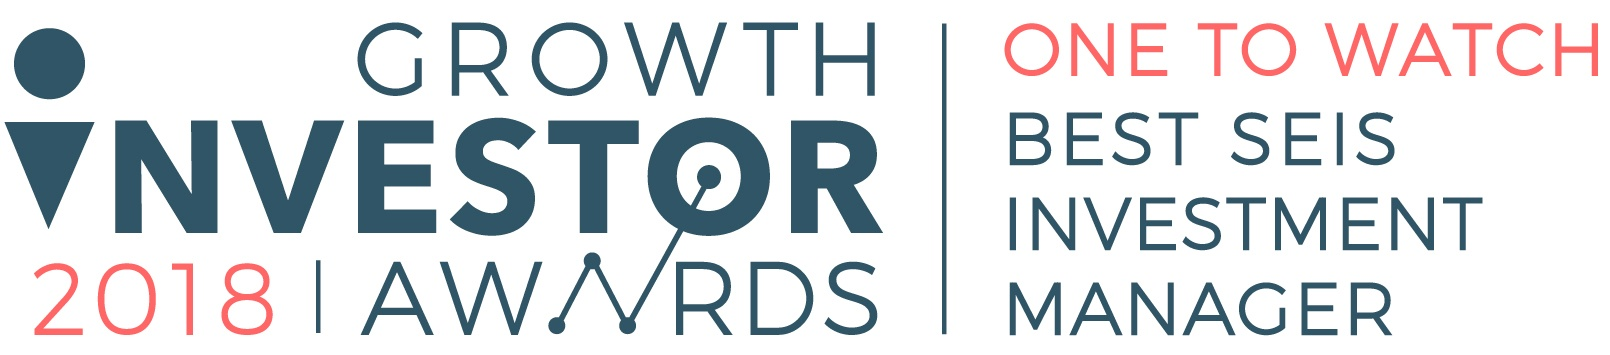 Growth Investor Awards One to Watch winners